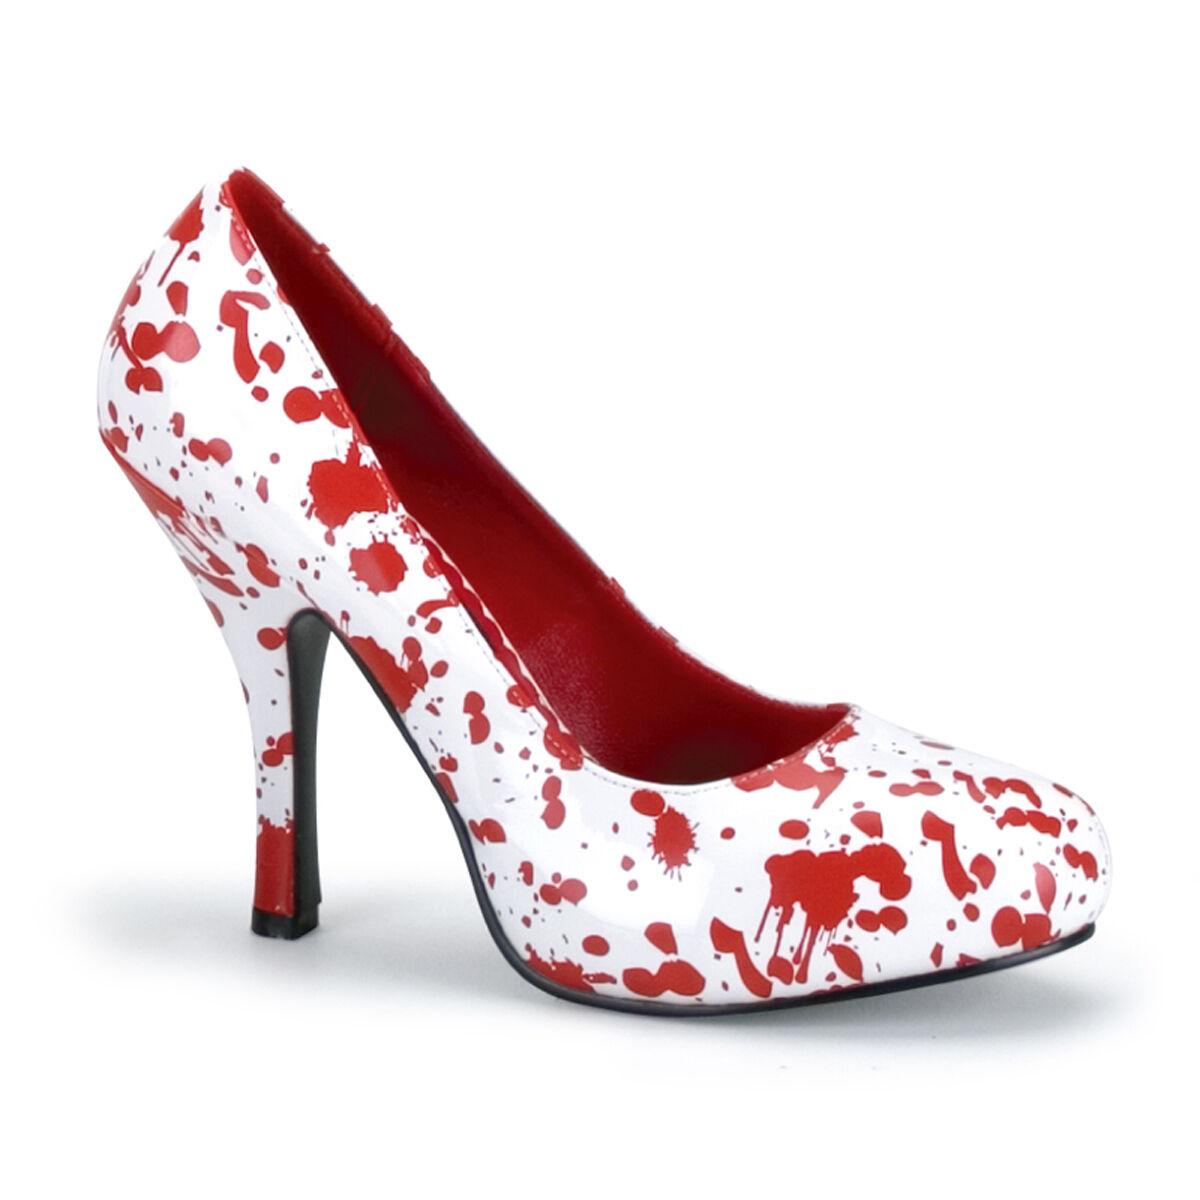 outlet online Funtasma-Blood Splattered bianco bianco bianco tacco a stiletto  acquista online